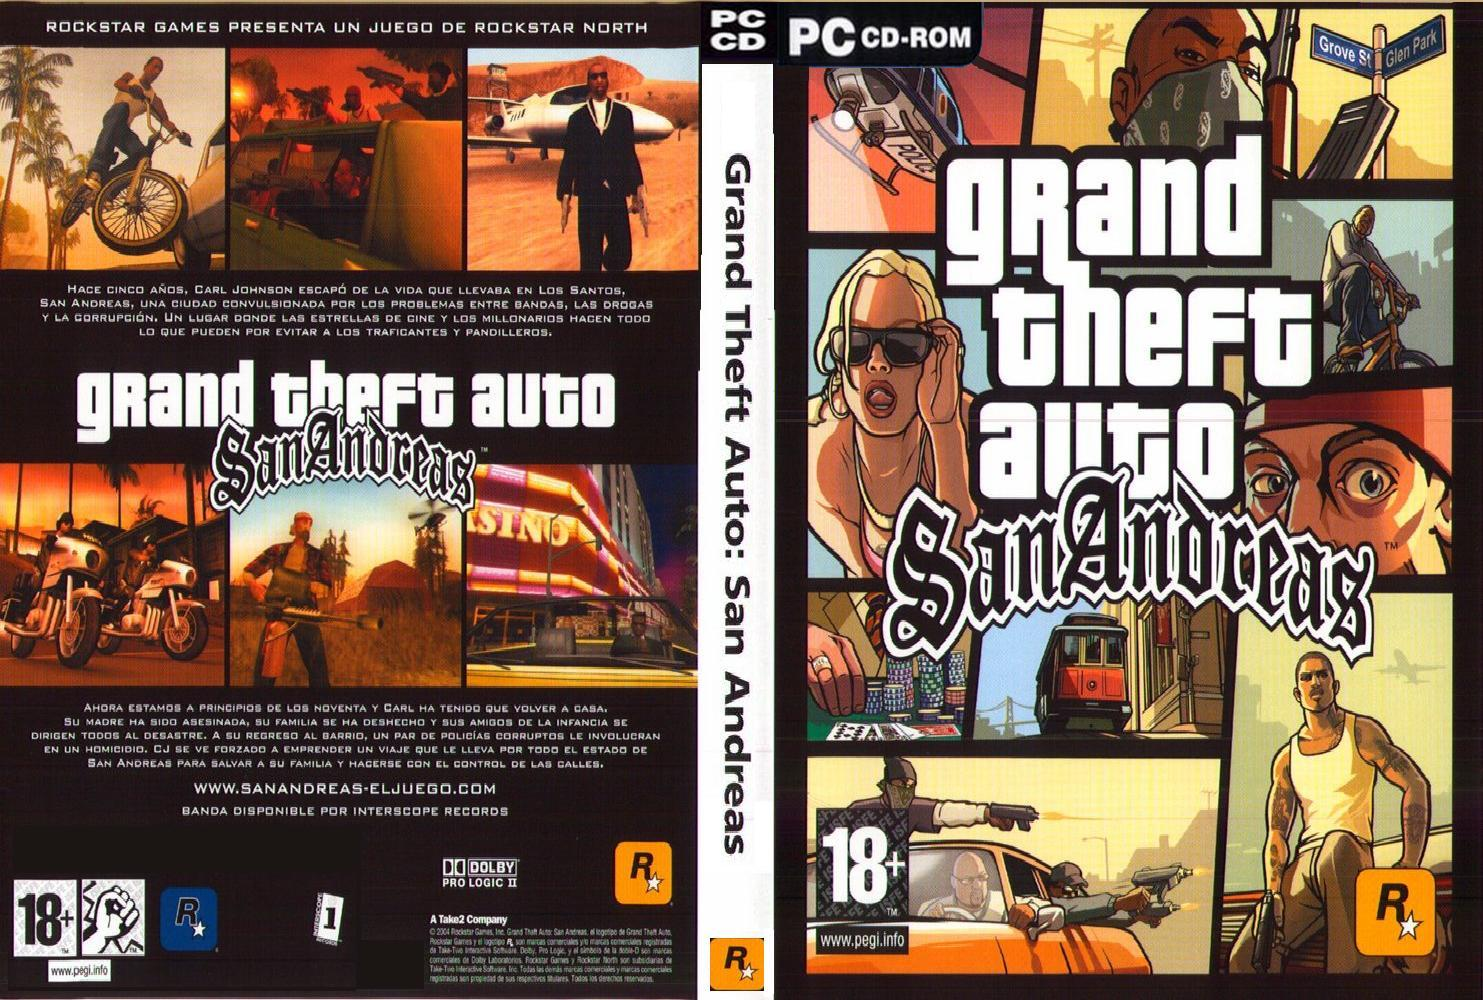 descargar gta san andreas full espanol pc utorrent